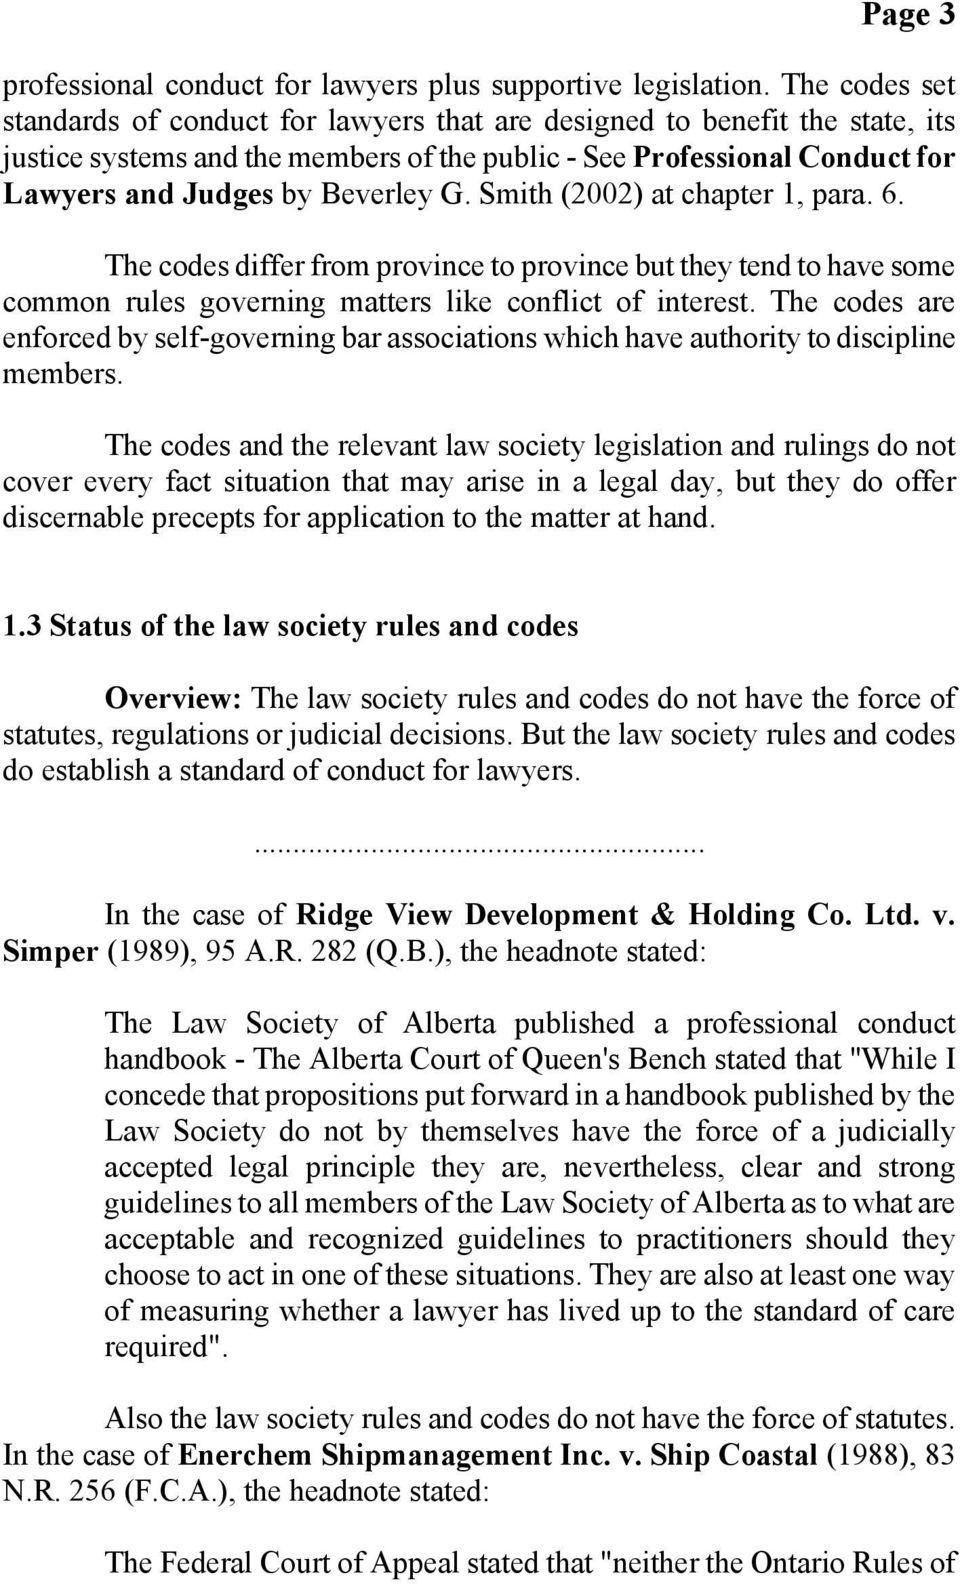 G. Smith (2002) at chapter 1, para. 6. The codes differ from province to province but they tend to have some common rules governing matters like conflict of interest.